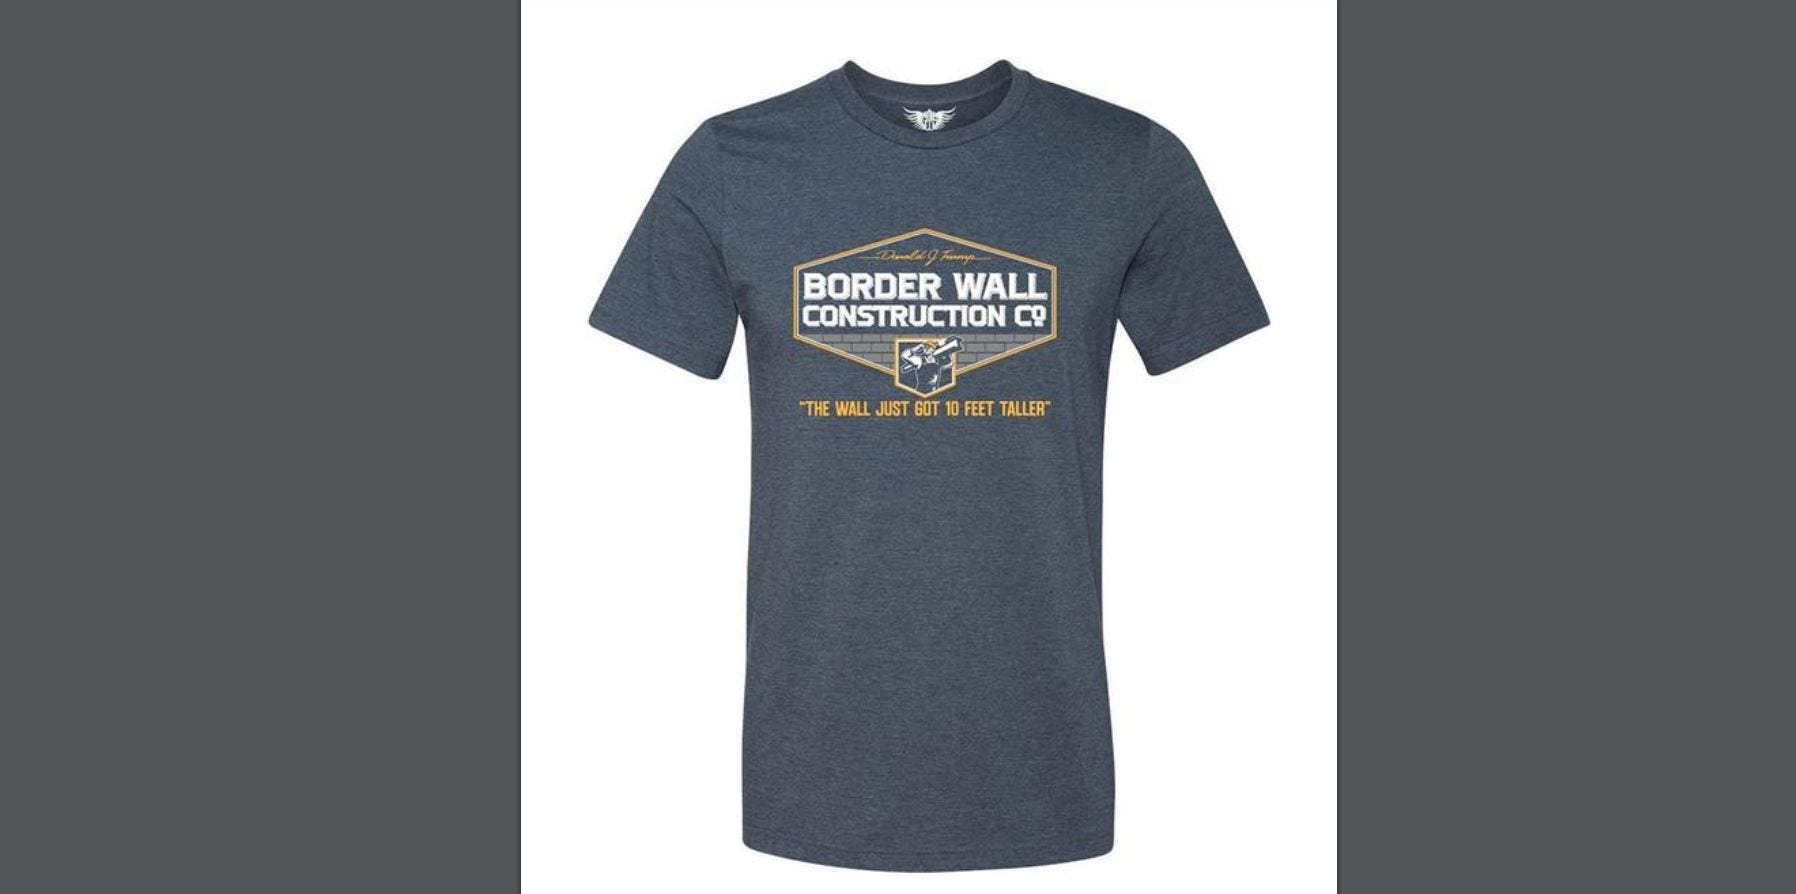 Student sues school over suspension for 'Trump Border Wall Construction Co.' T-shirt